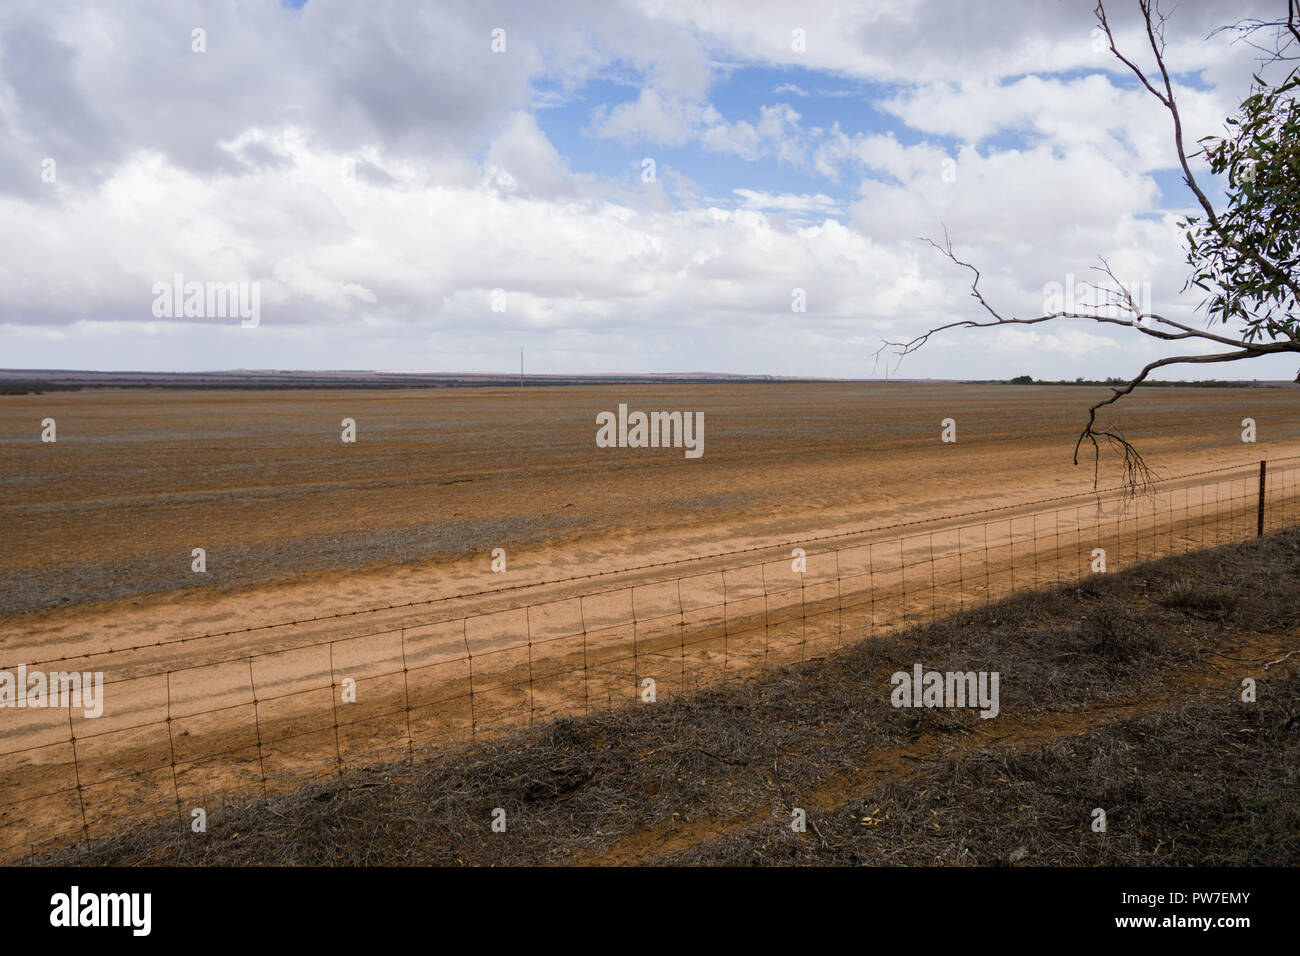 Bare paddock with wire fence and dirt track, Eyre Peninsular South Australia - Stock Image